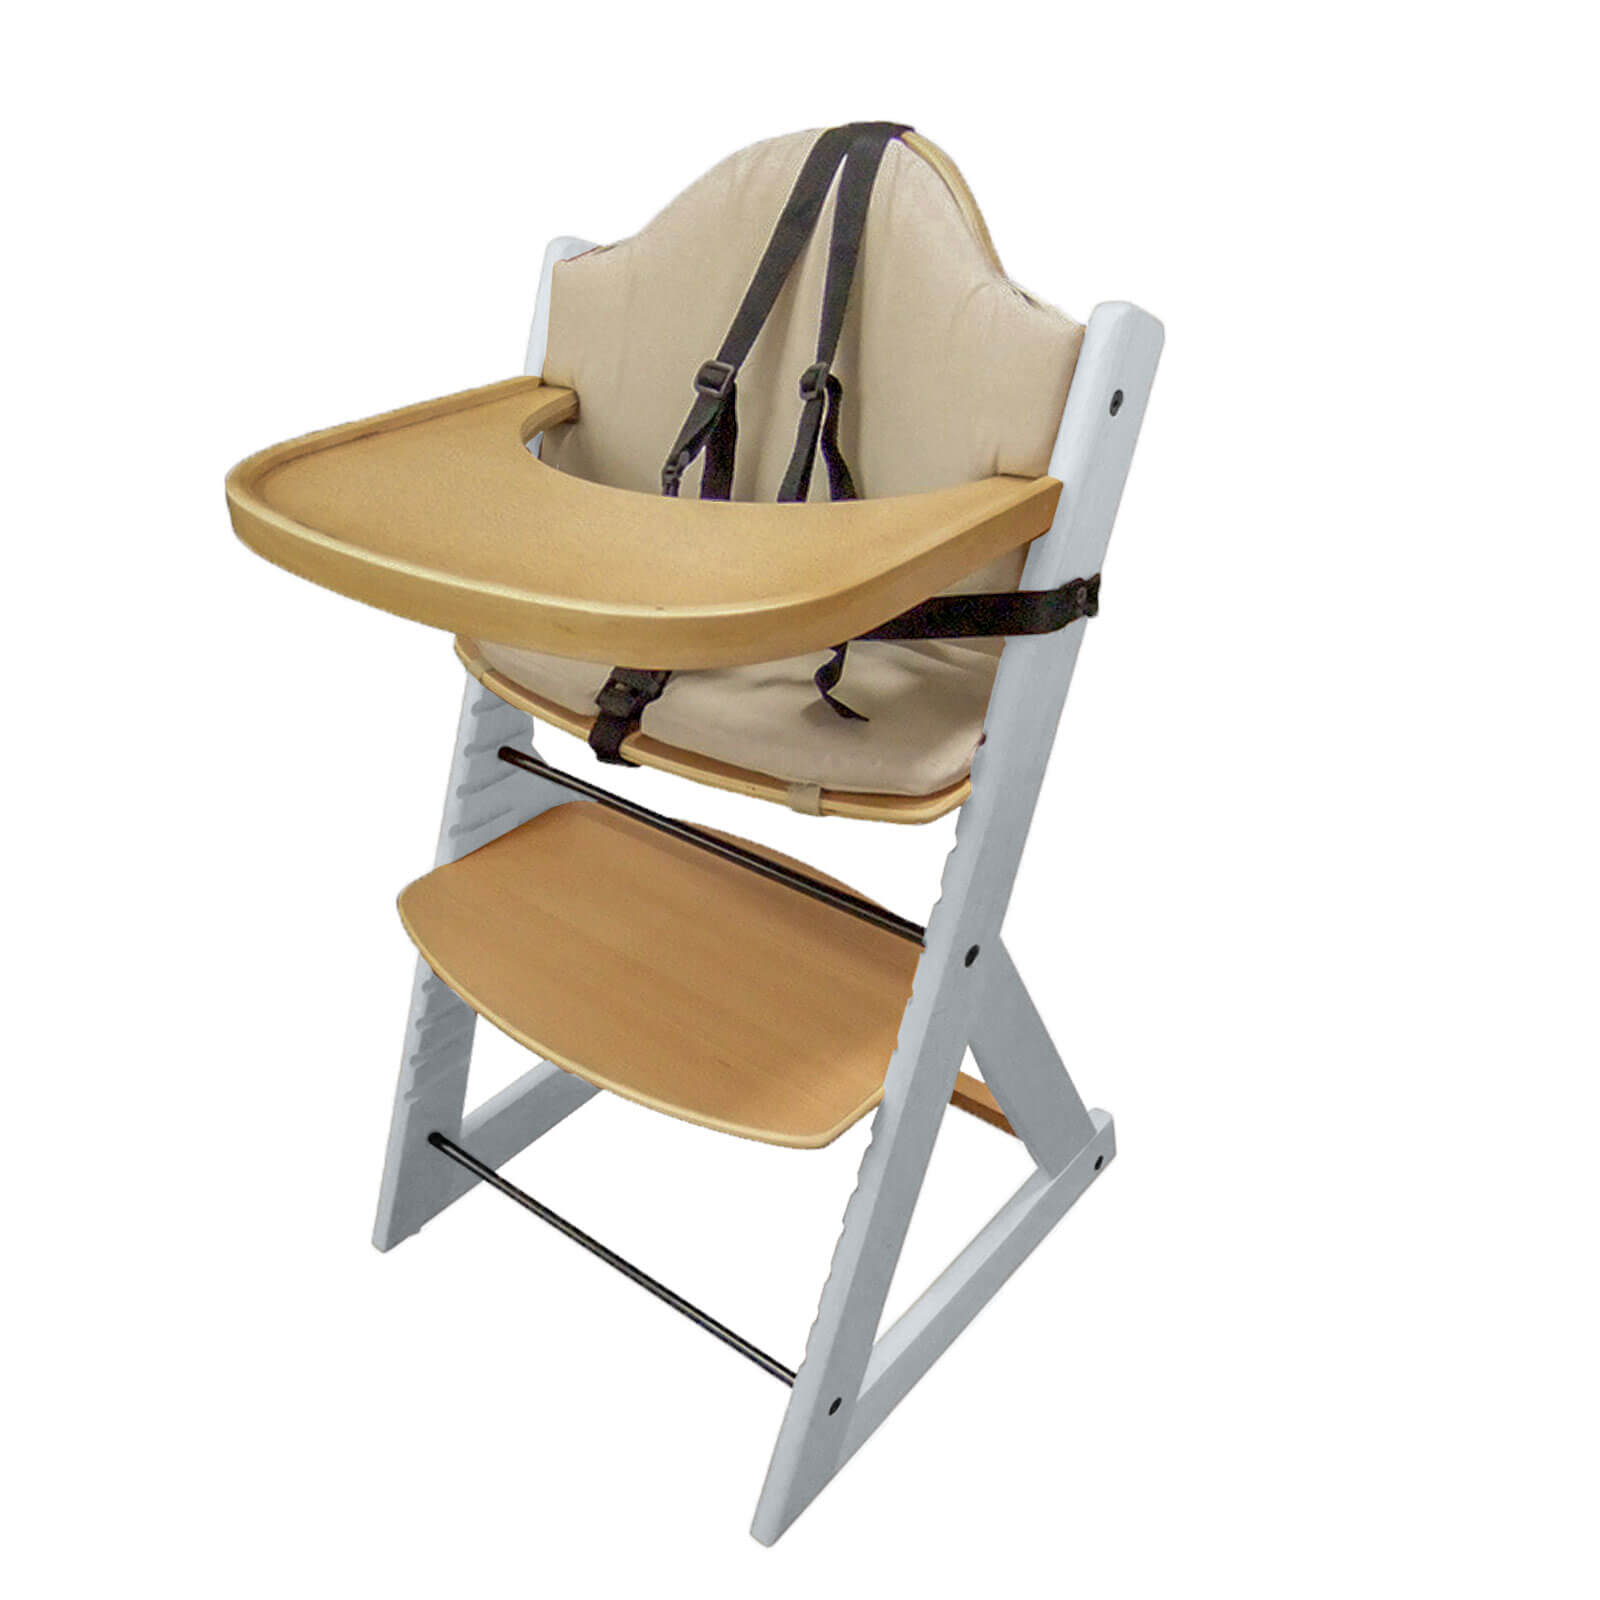 Wooden Baby High Chair Wooden Baby High Chair 3in1 Highchair With Tray